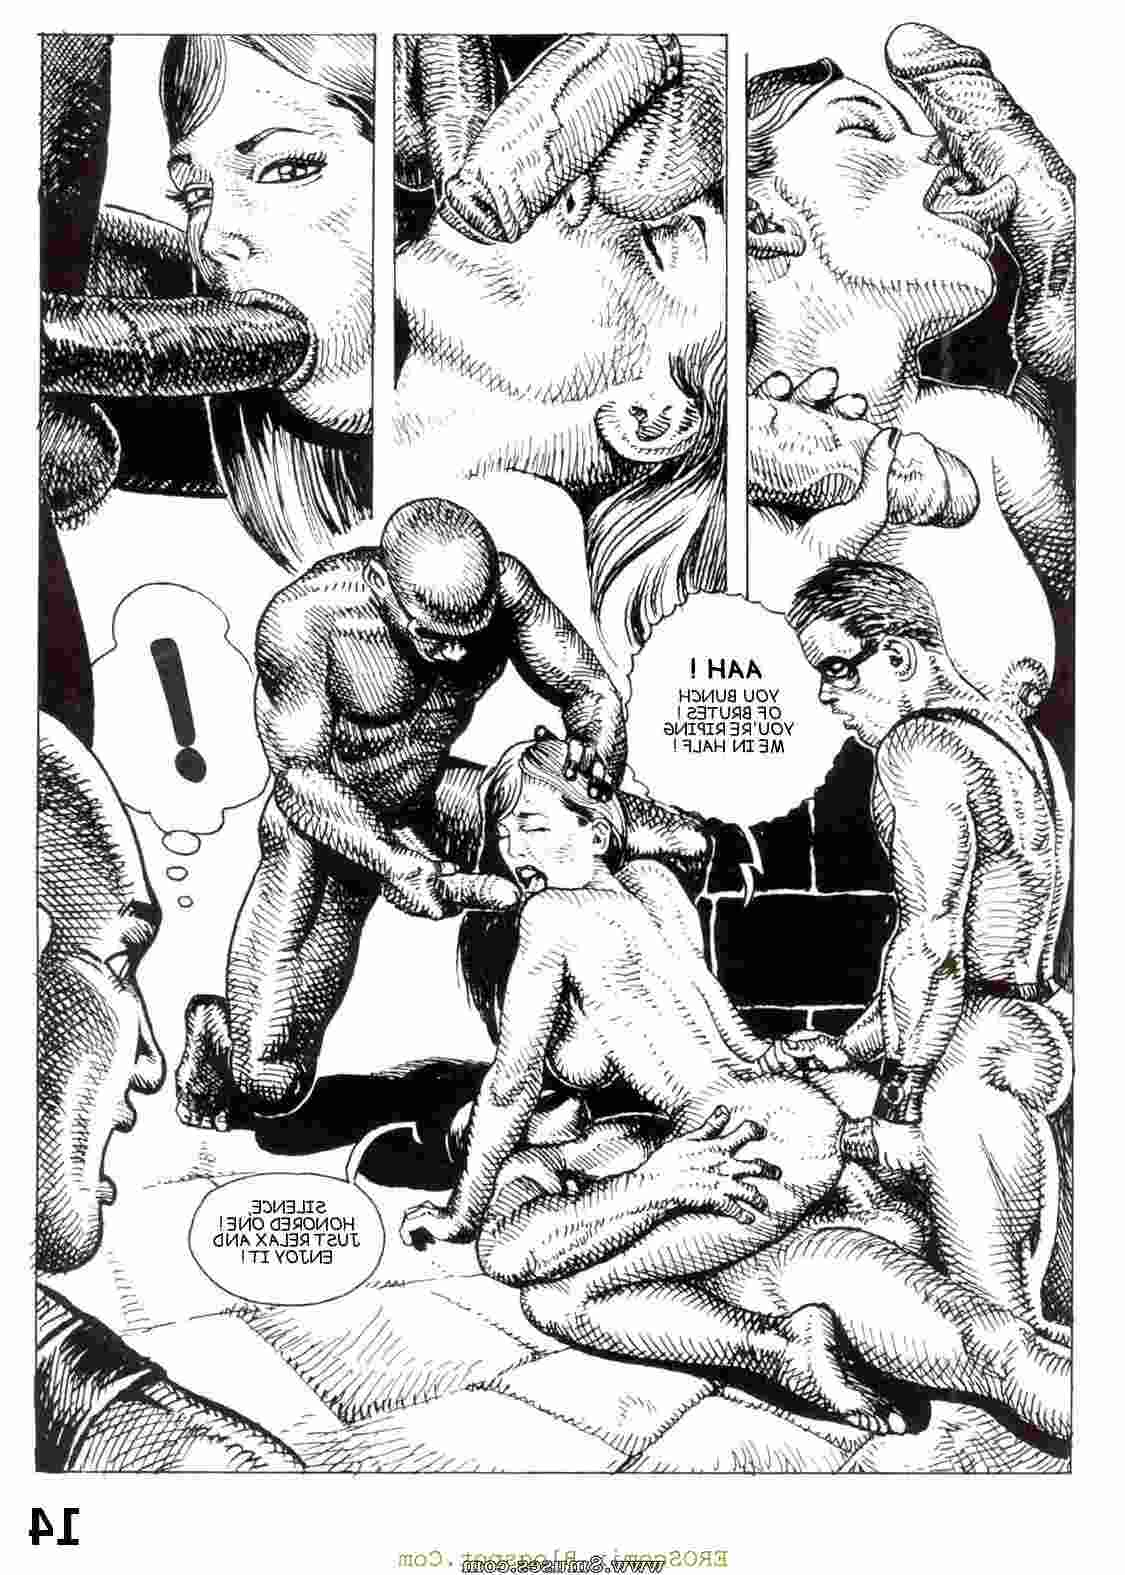 Bruno-Coq-Comics/Secret-Society Secret_Society__8muses_-_Sex_and_Porn_Comics_15.jpg